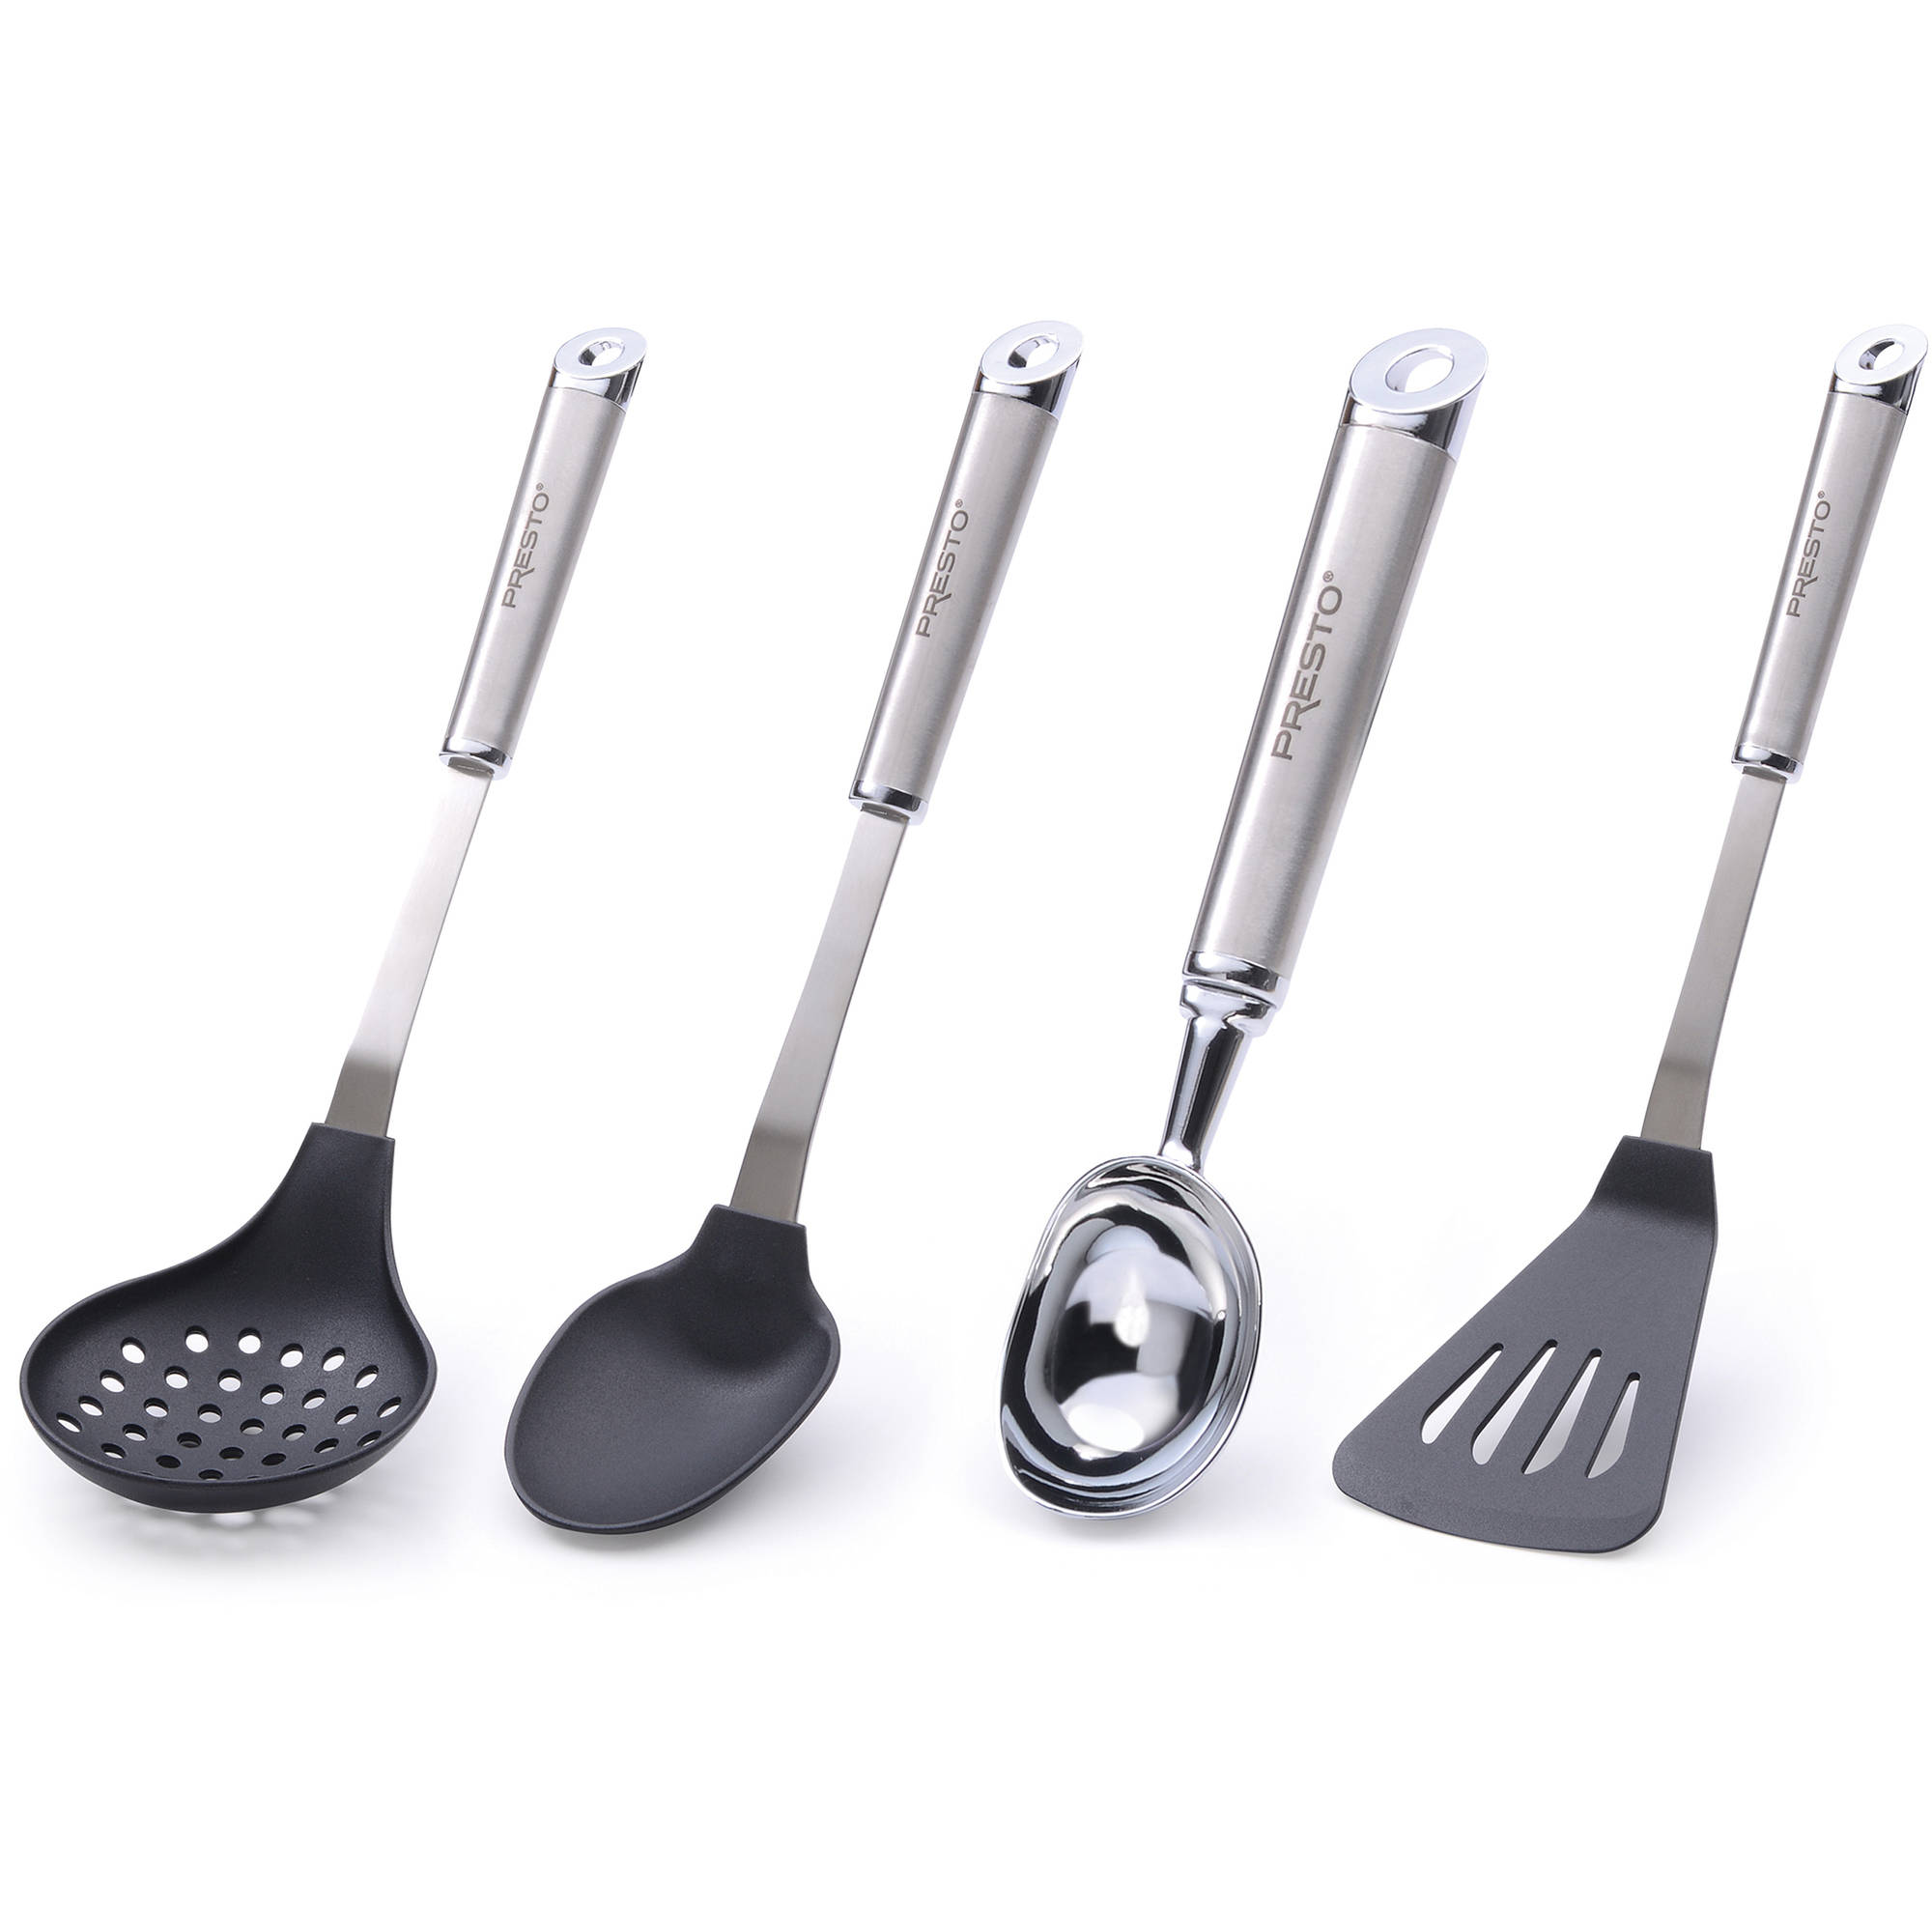 Presto 4-Piece Stainless Steel Utensil Set